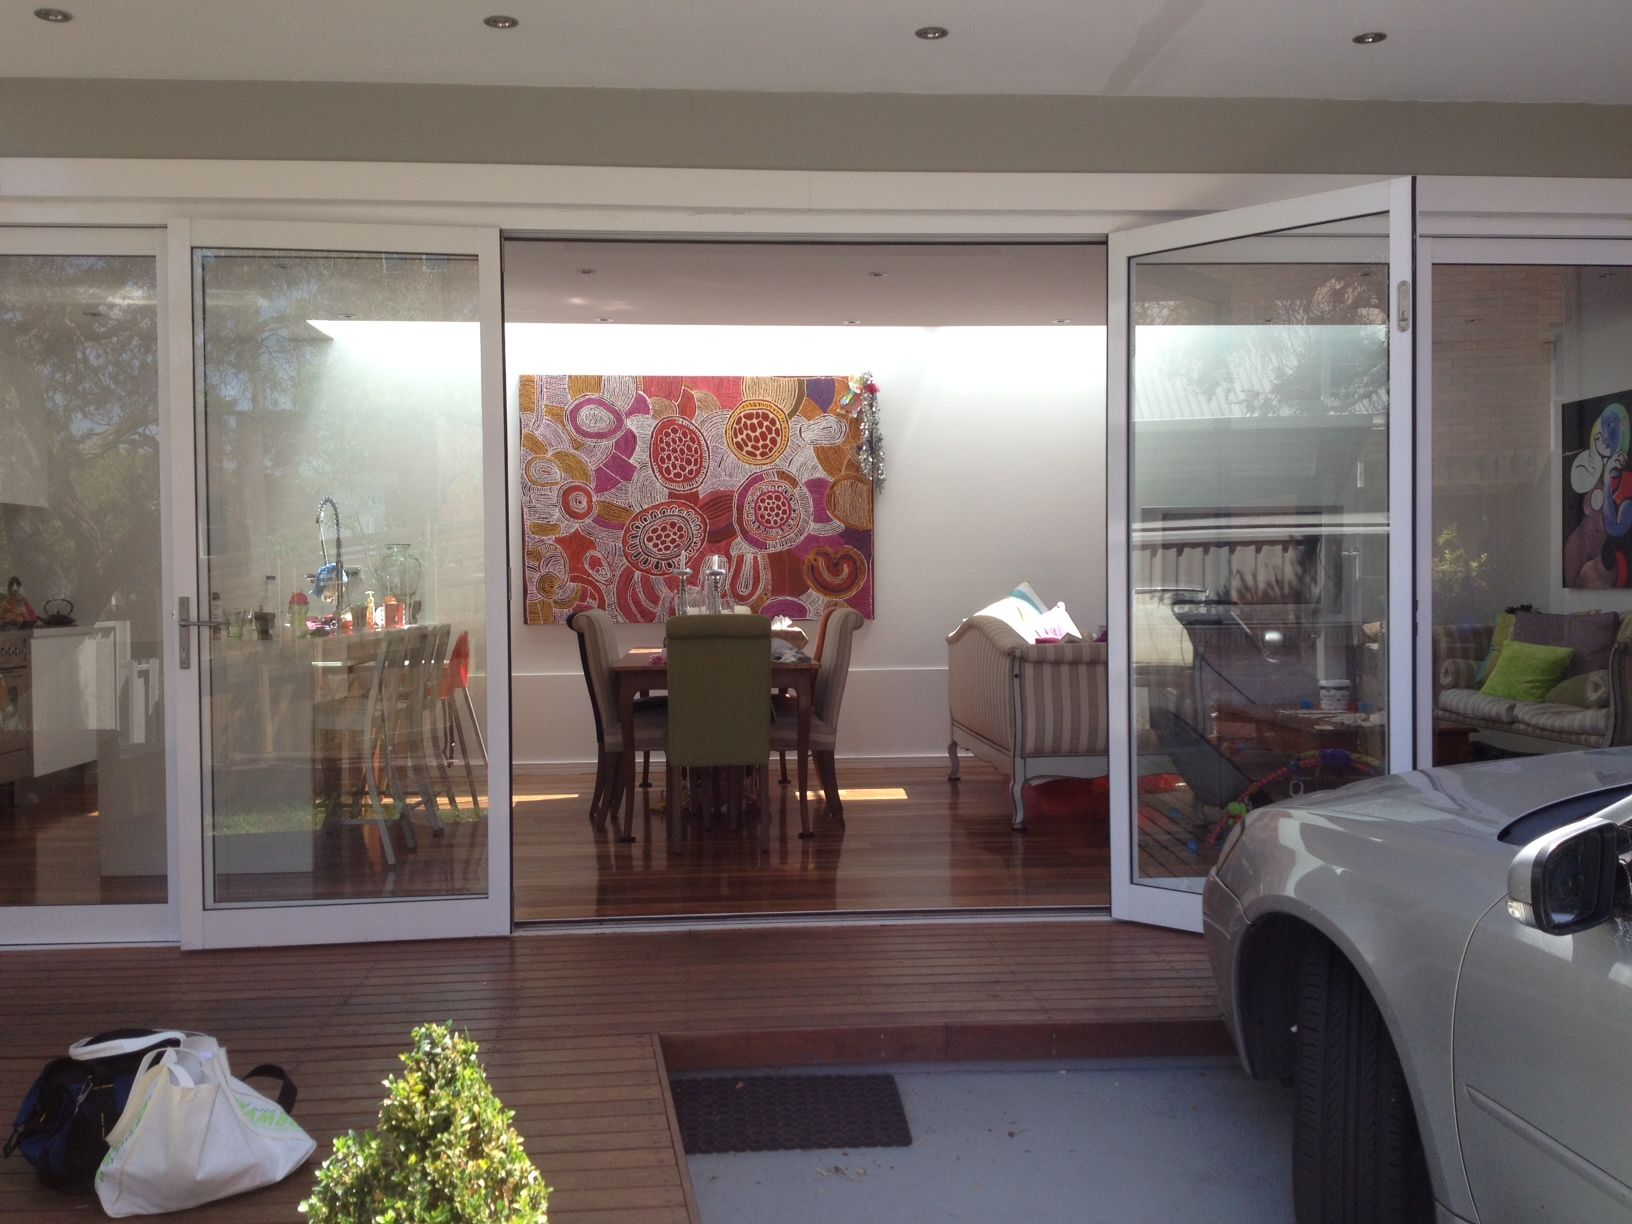 Energy And Vitality In Statement Piece With Elegant Furnishings. Aboriginal Art Home